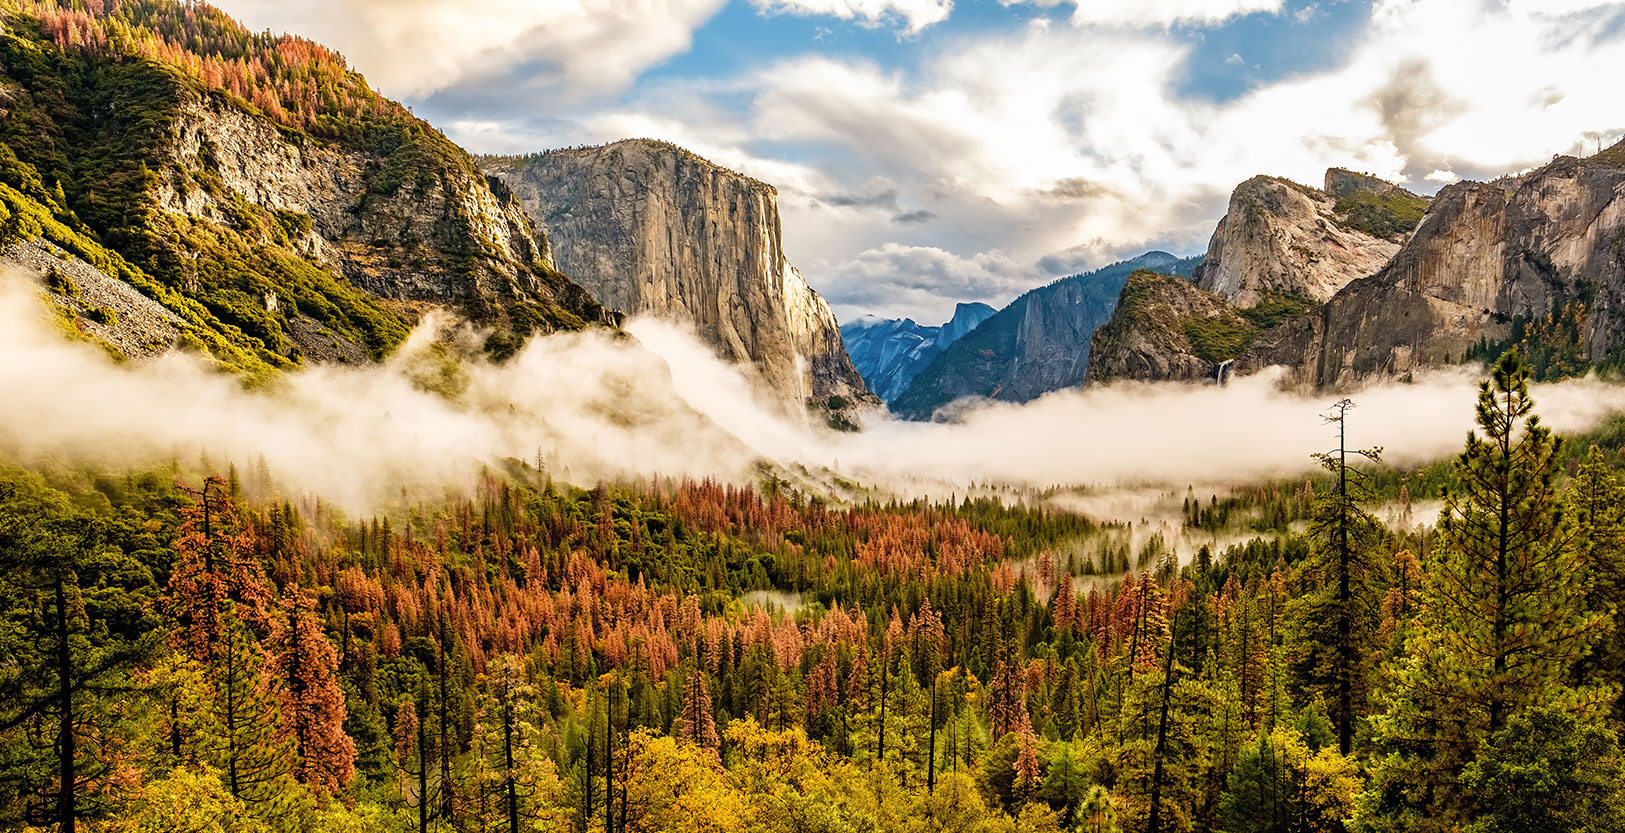 Throwback Thursday: Early Climbing Counterculture in the Yosemite Valley